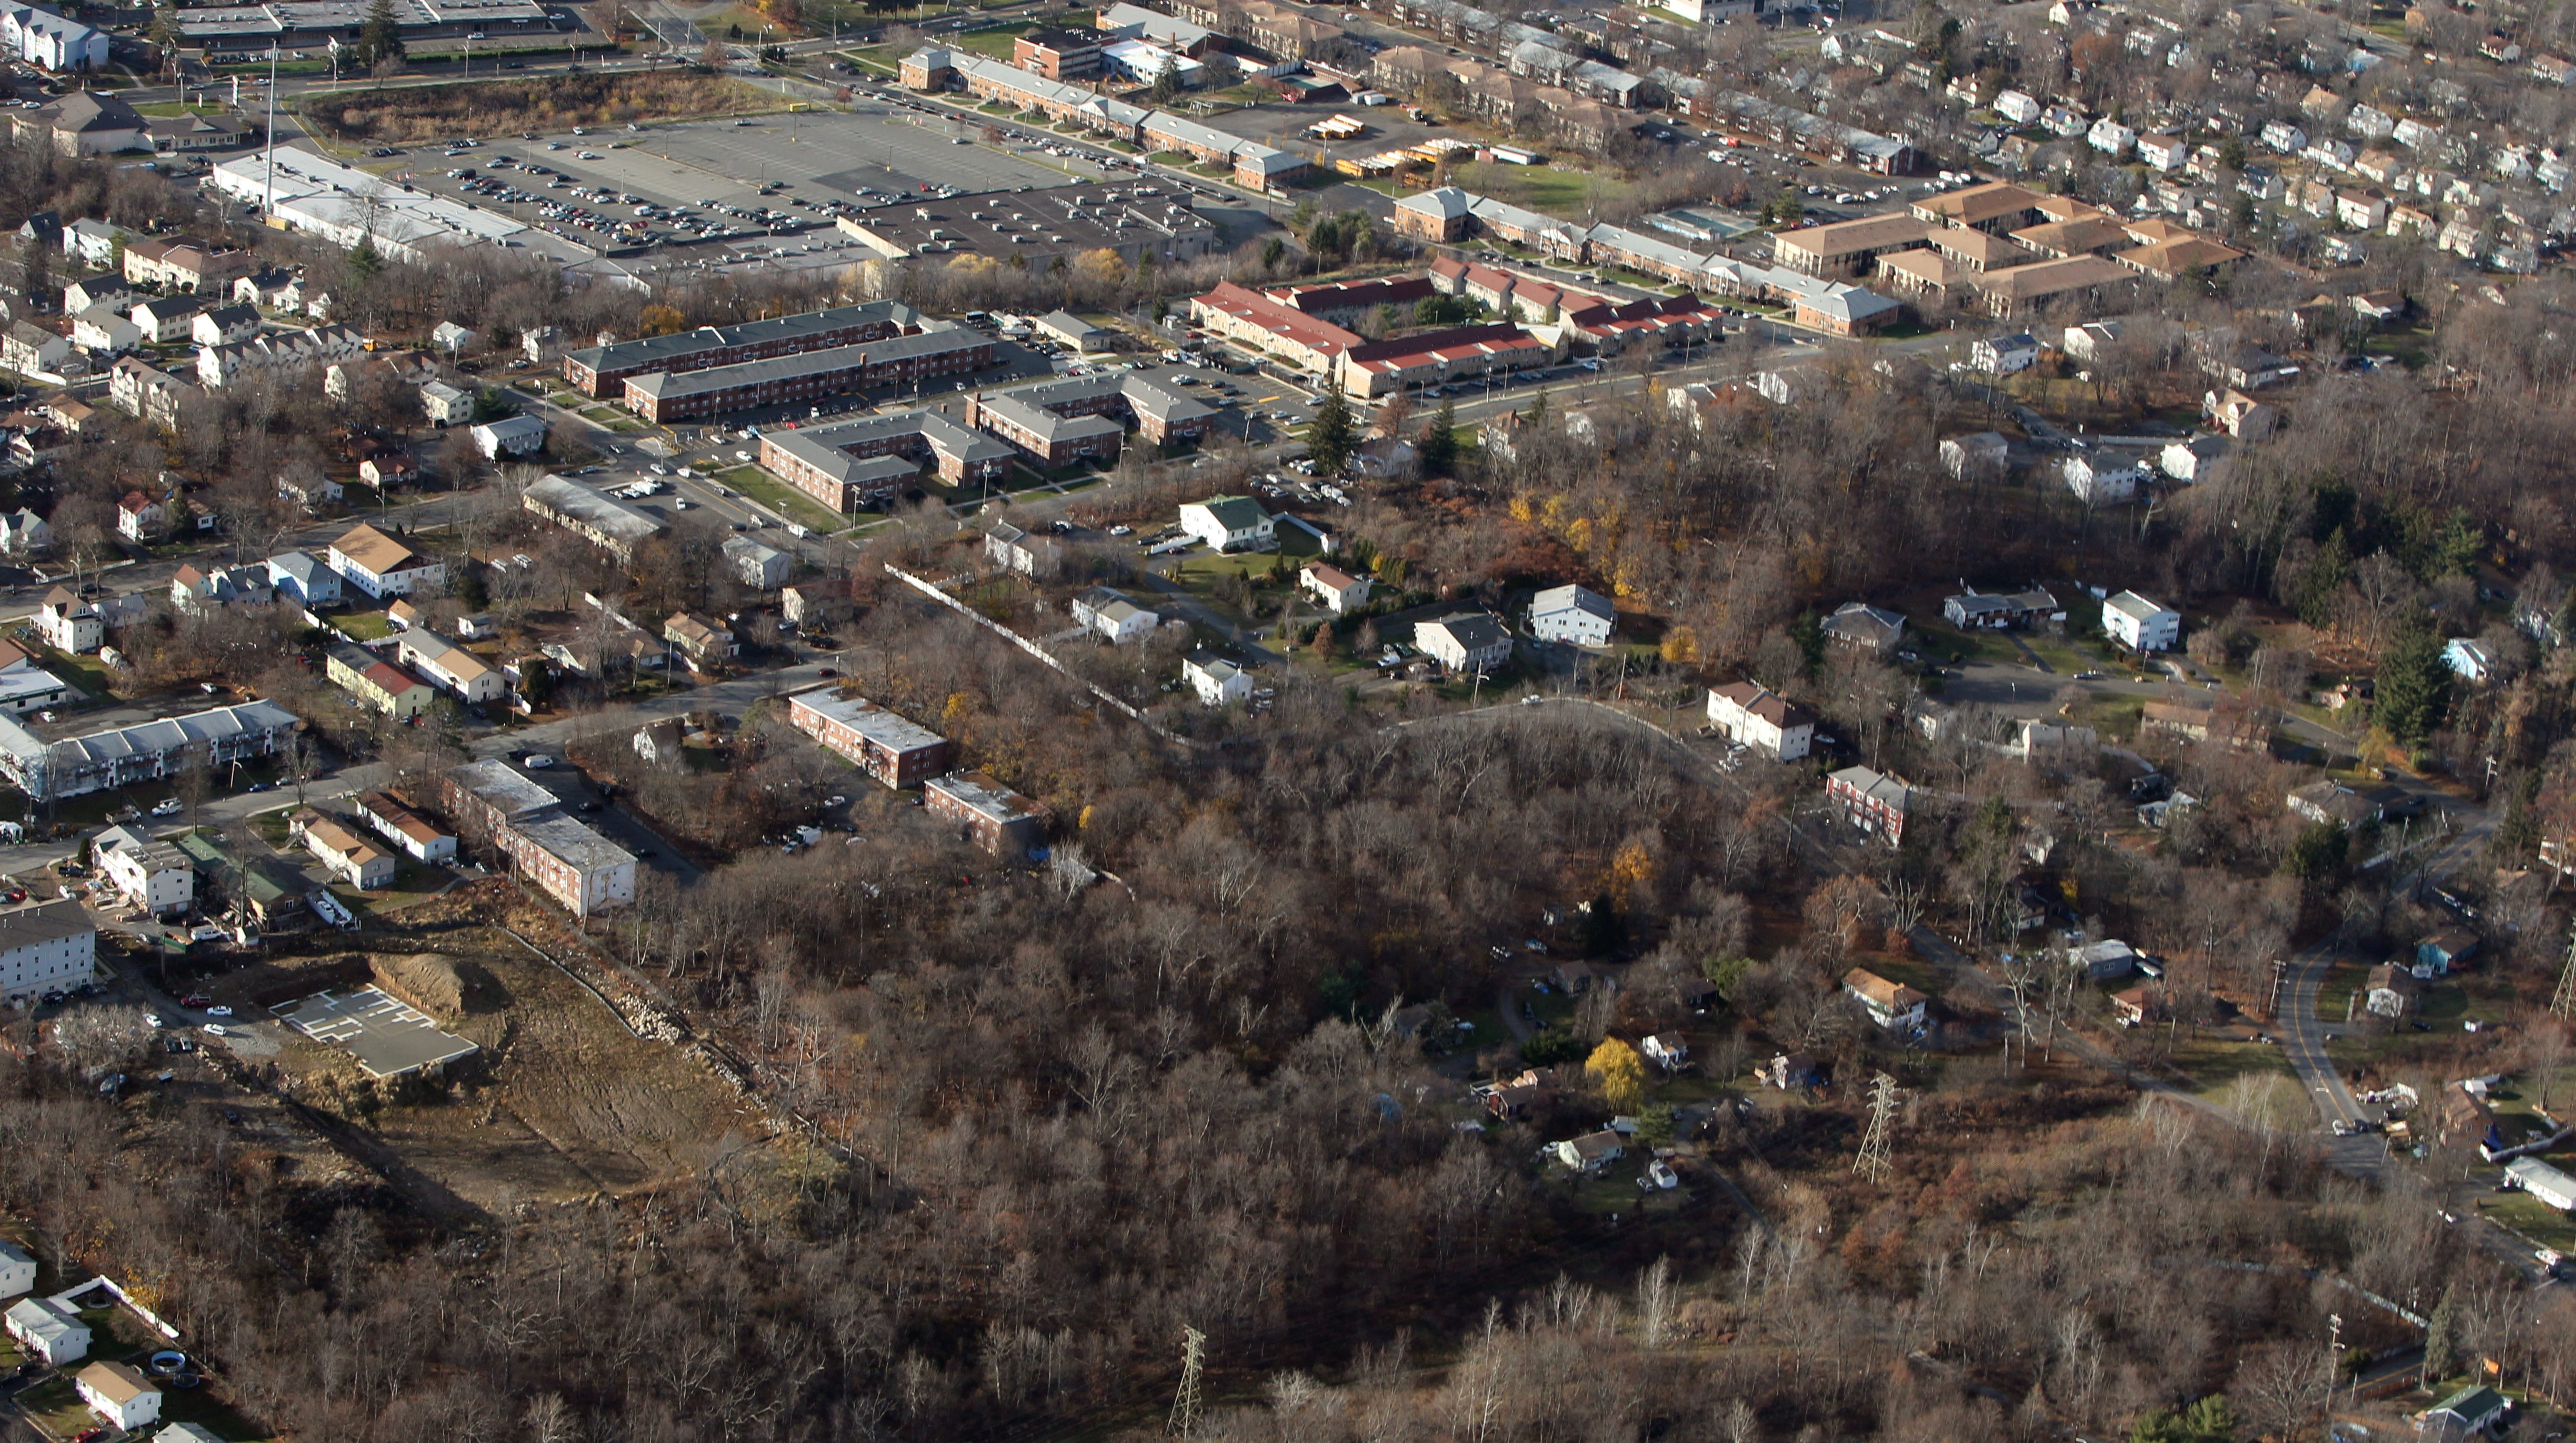 Ramapo: Pascack Ridge housing plan continues amid opposition